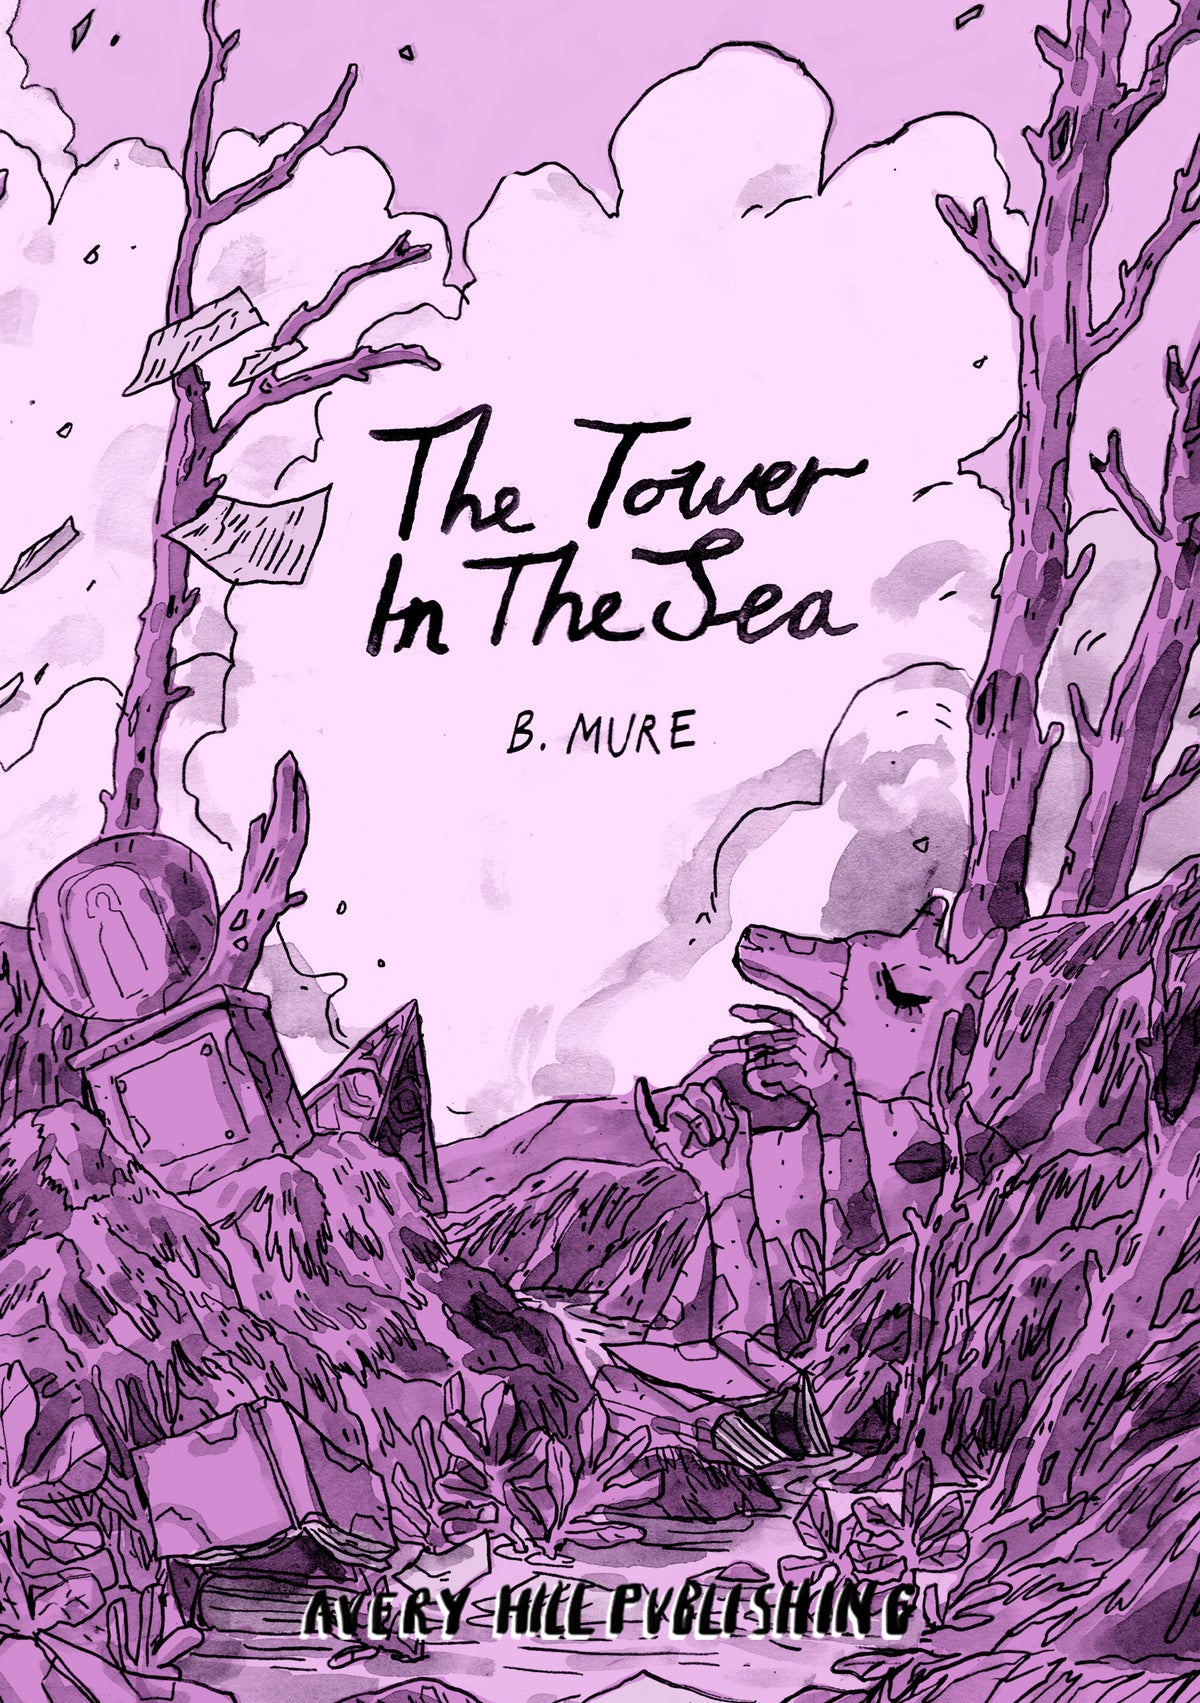 Ismyre, Terrible Means and The Tower in the Sea by B. Mure - Series Deal!